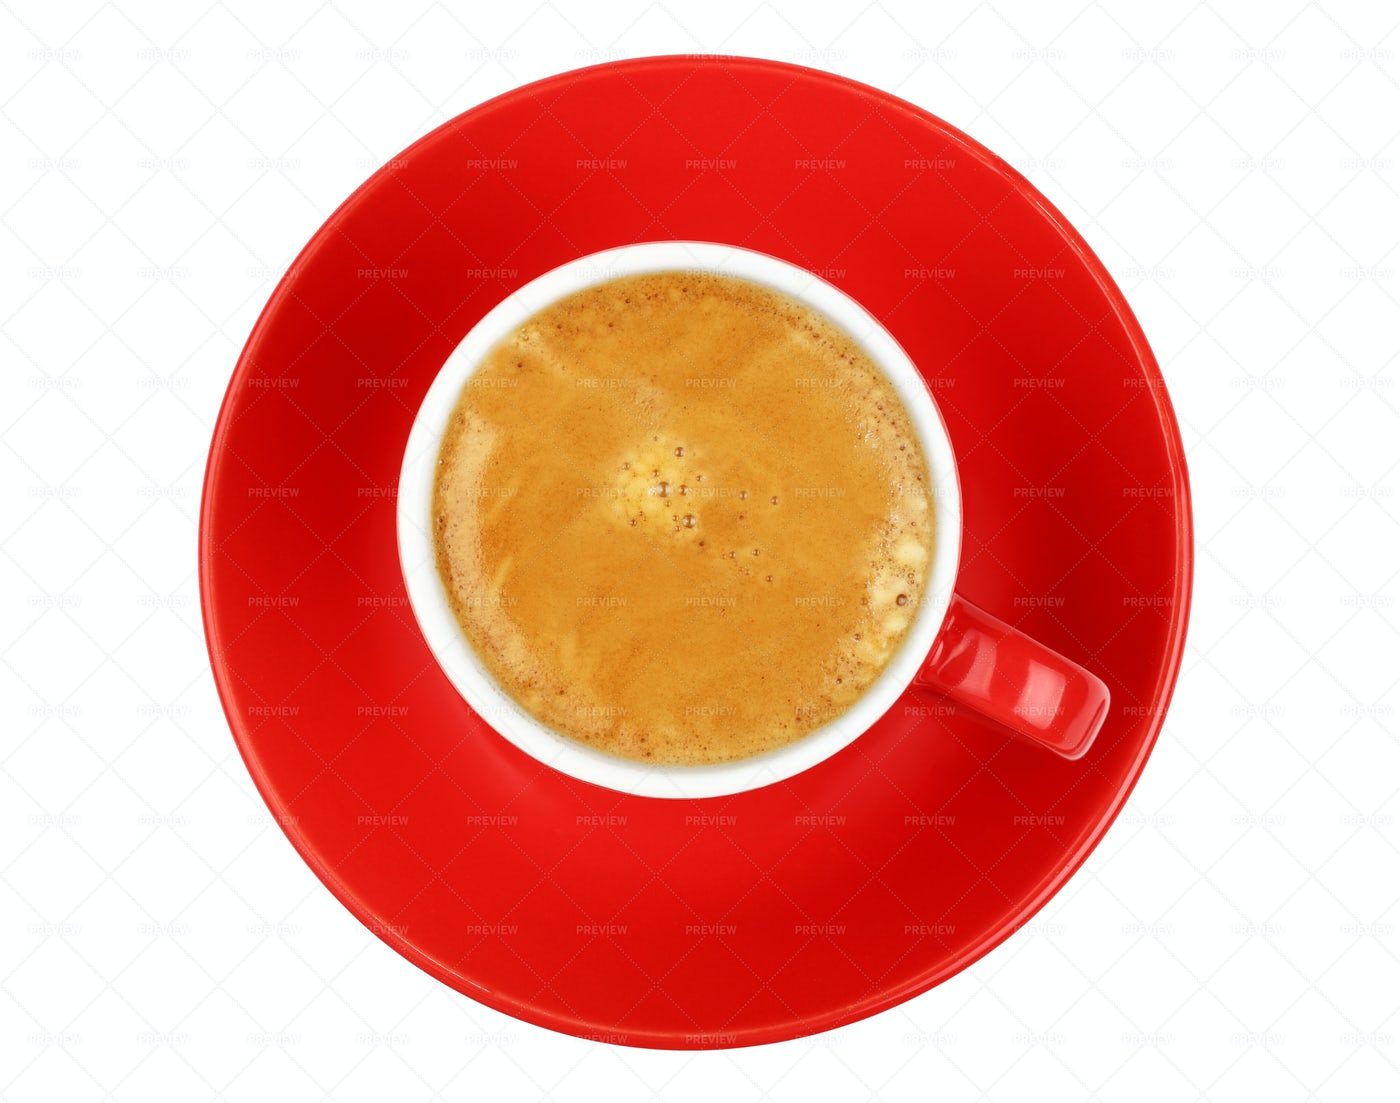 Espresso Coffee In A Red Cup: Stock Photos